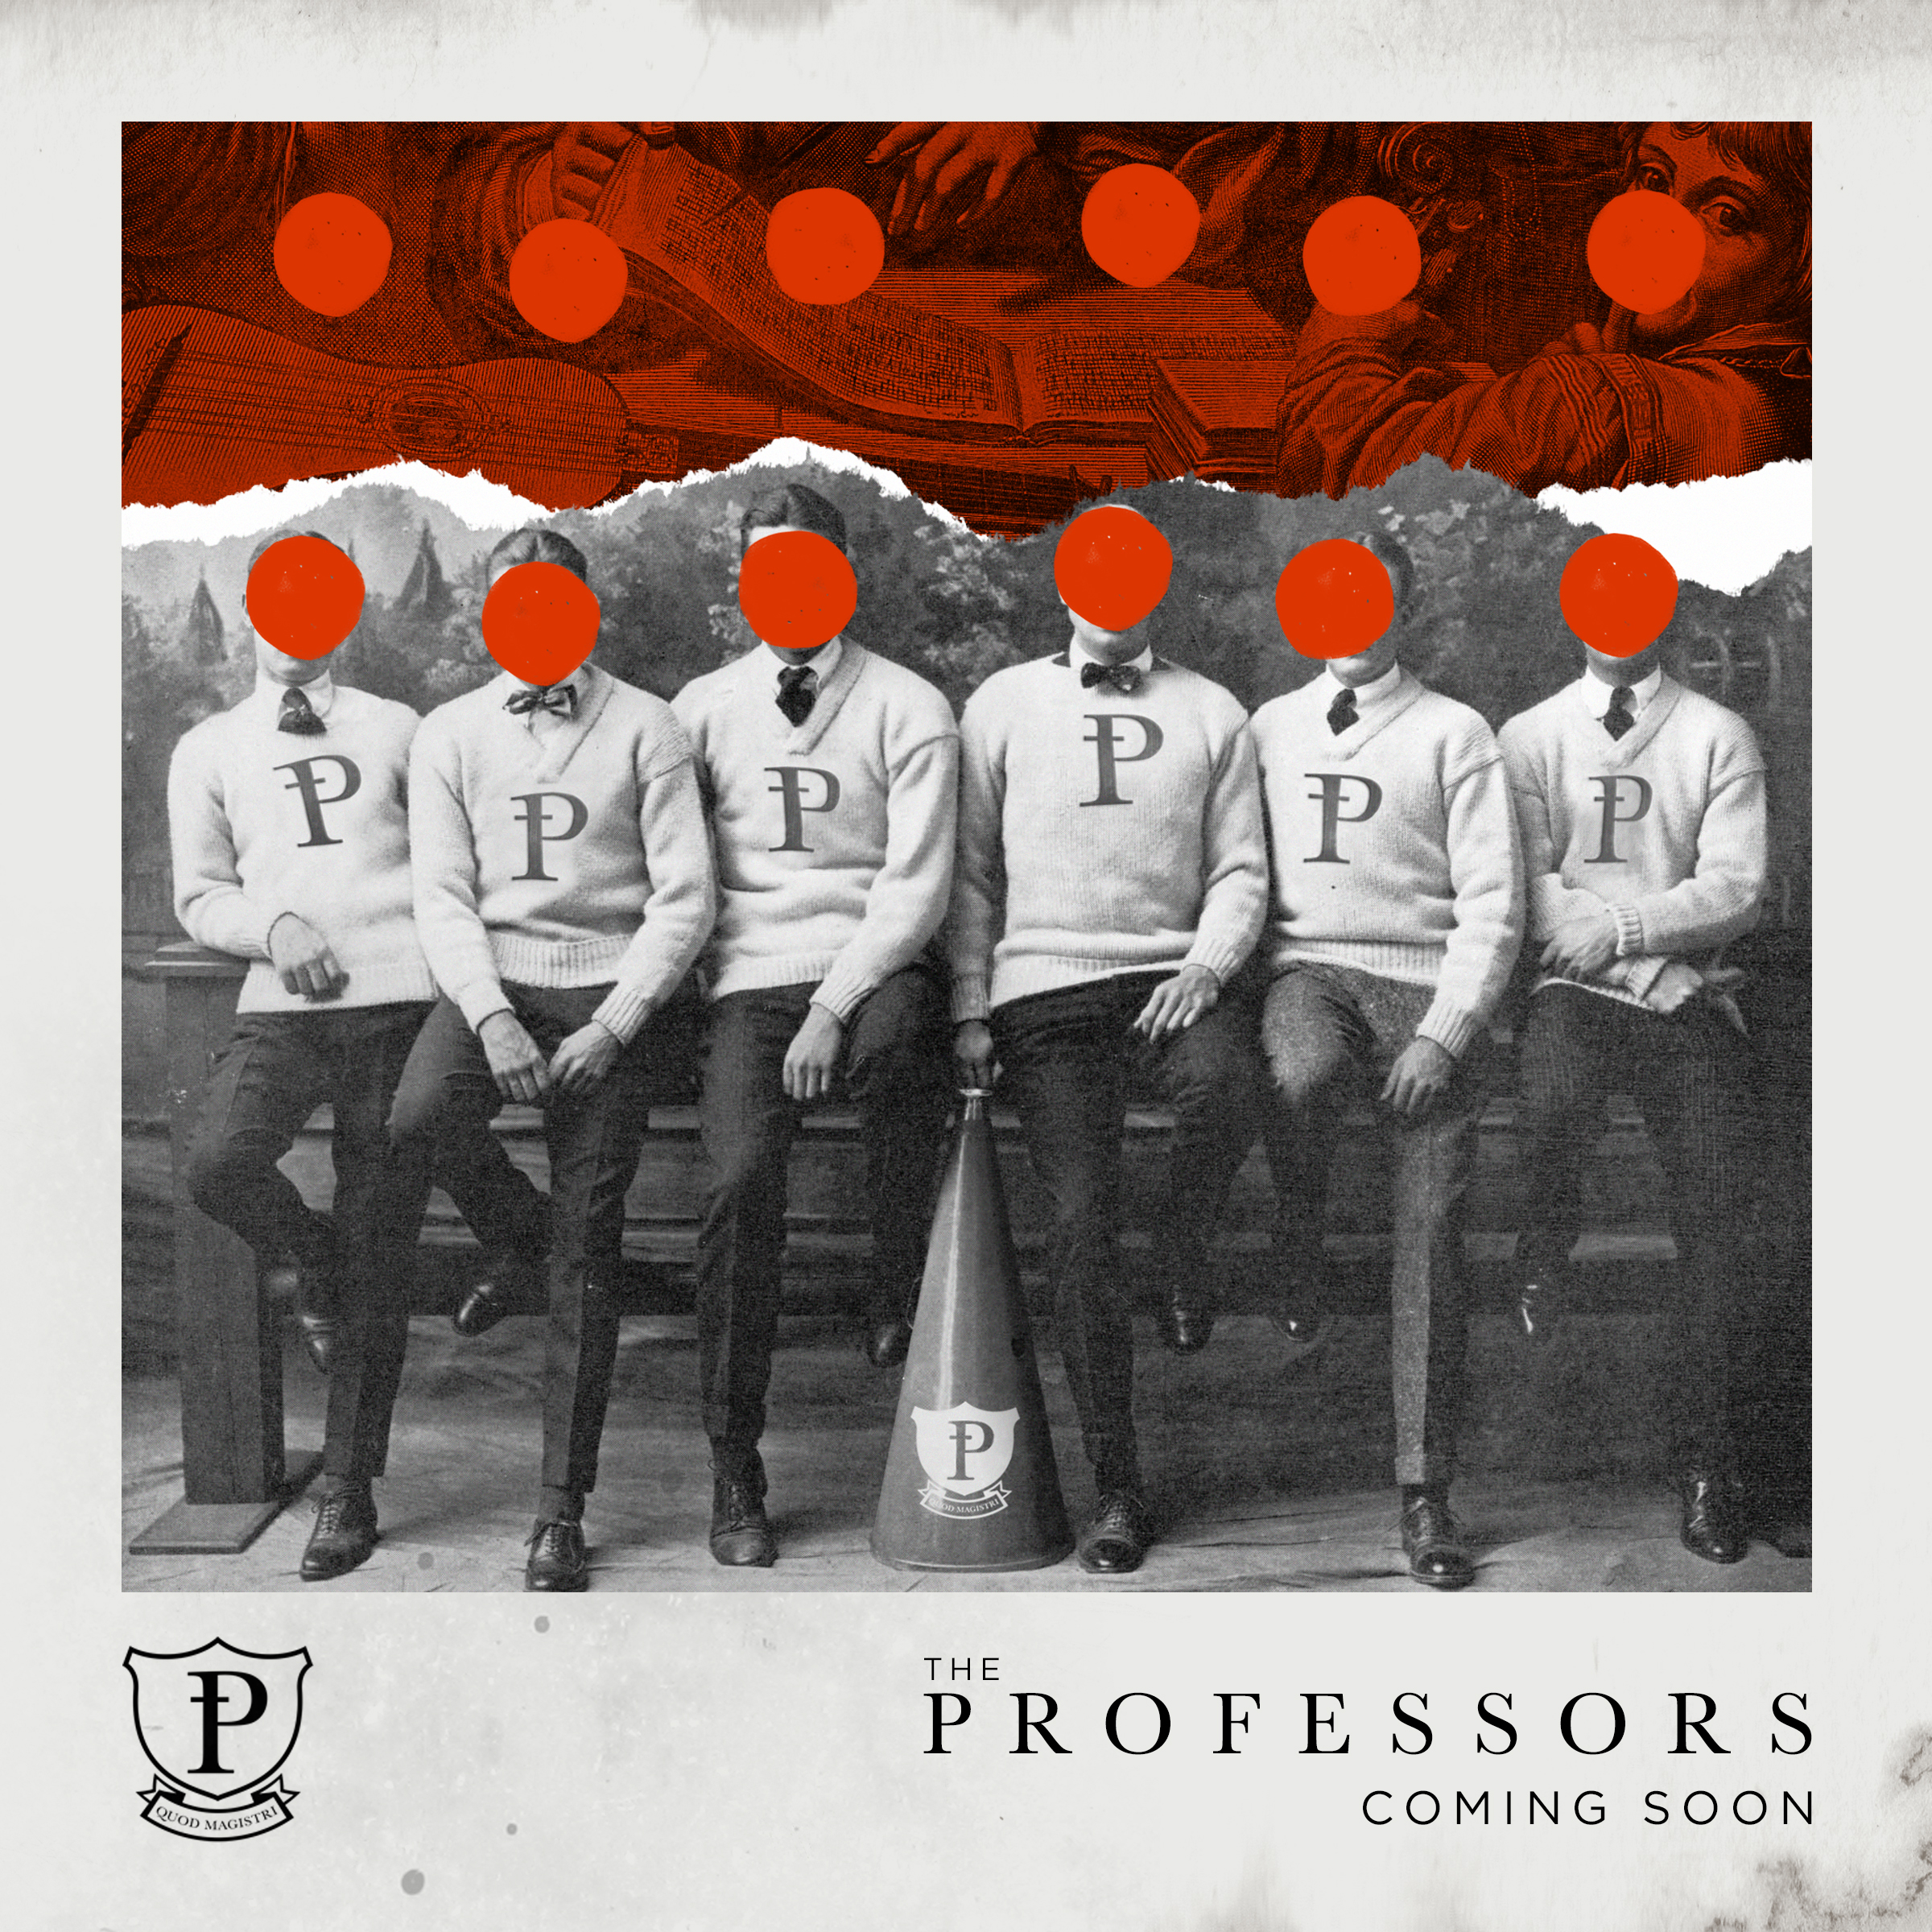 THE PROFESSORS COMING SOON SQUARE2.jpg